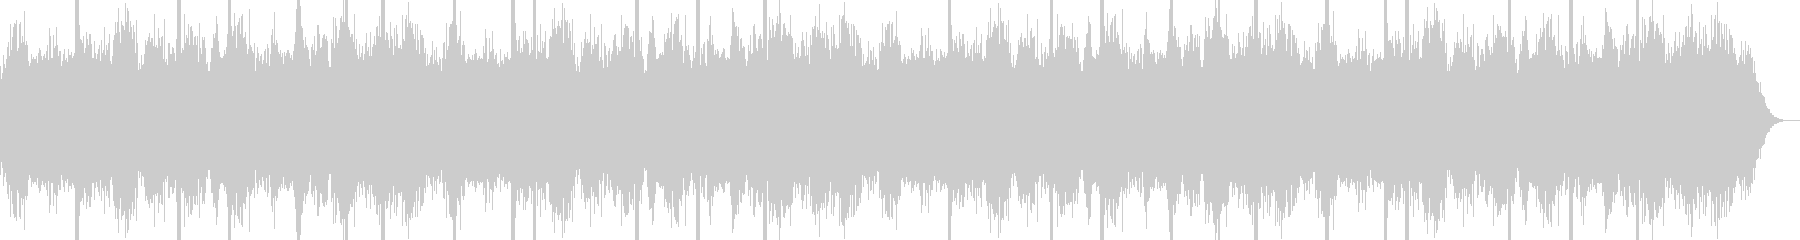 Spooky one scene of horror movie's unreproduced waveform